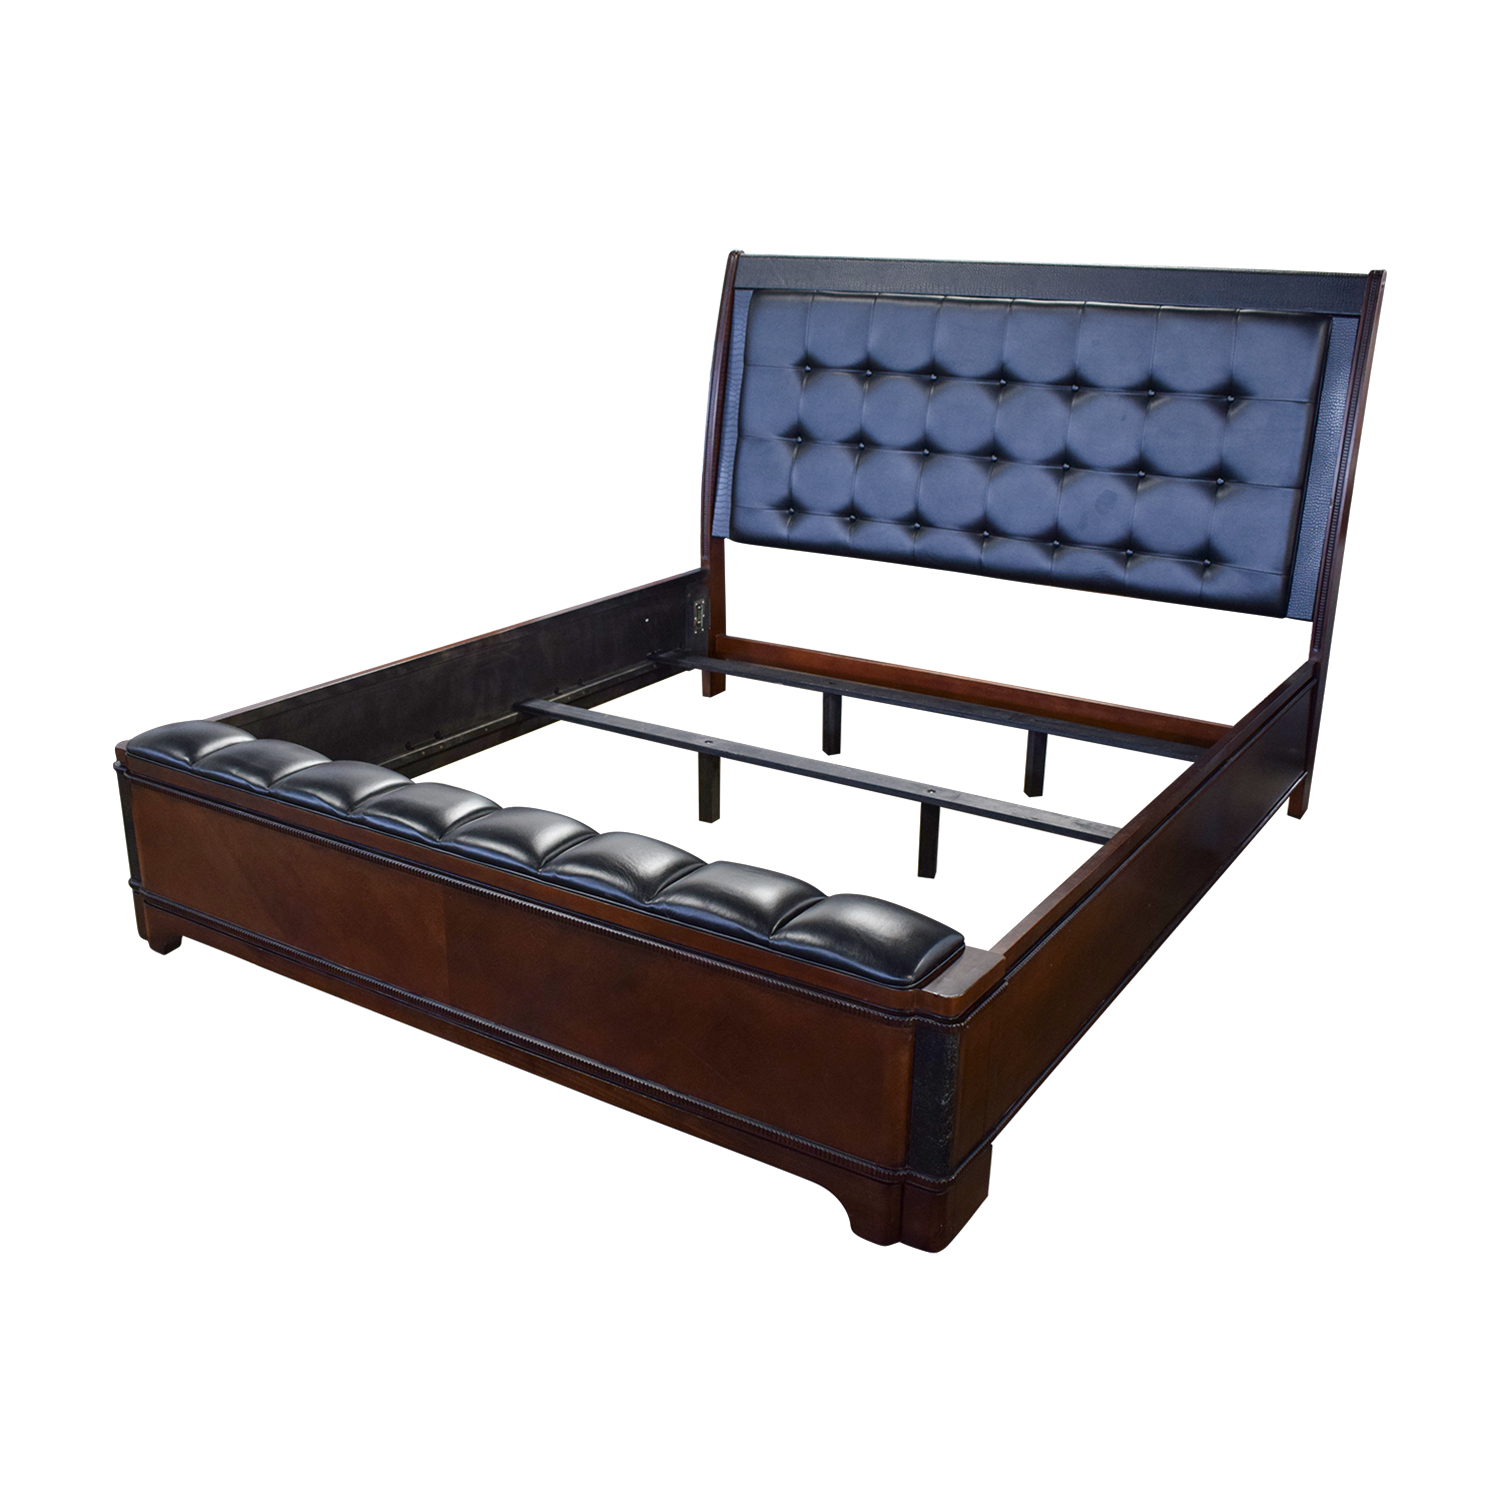 Raymour and Flanigan Dundee Black Leather and Wood King Bed Frame Raymour and Flanigan